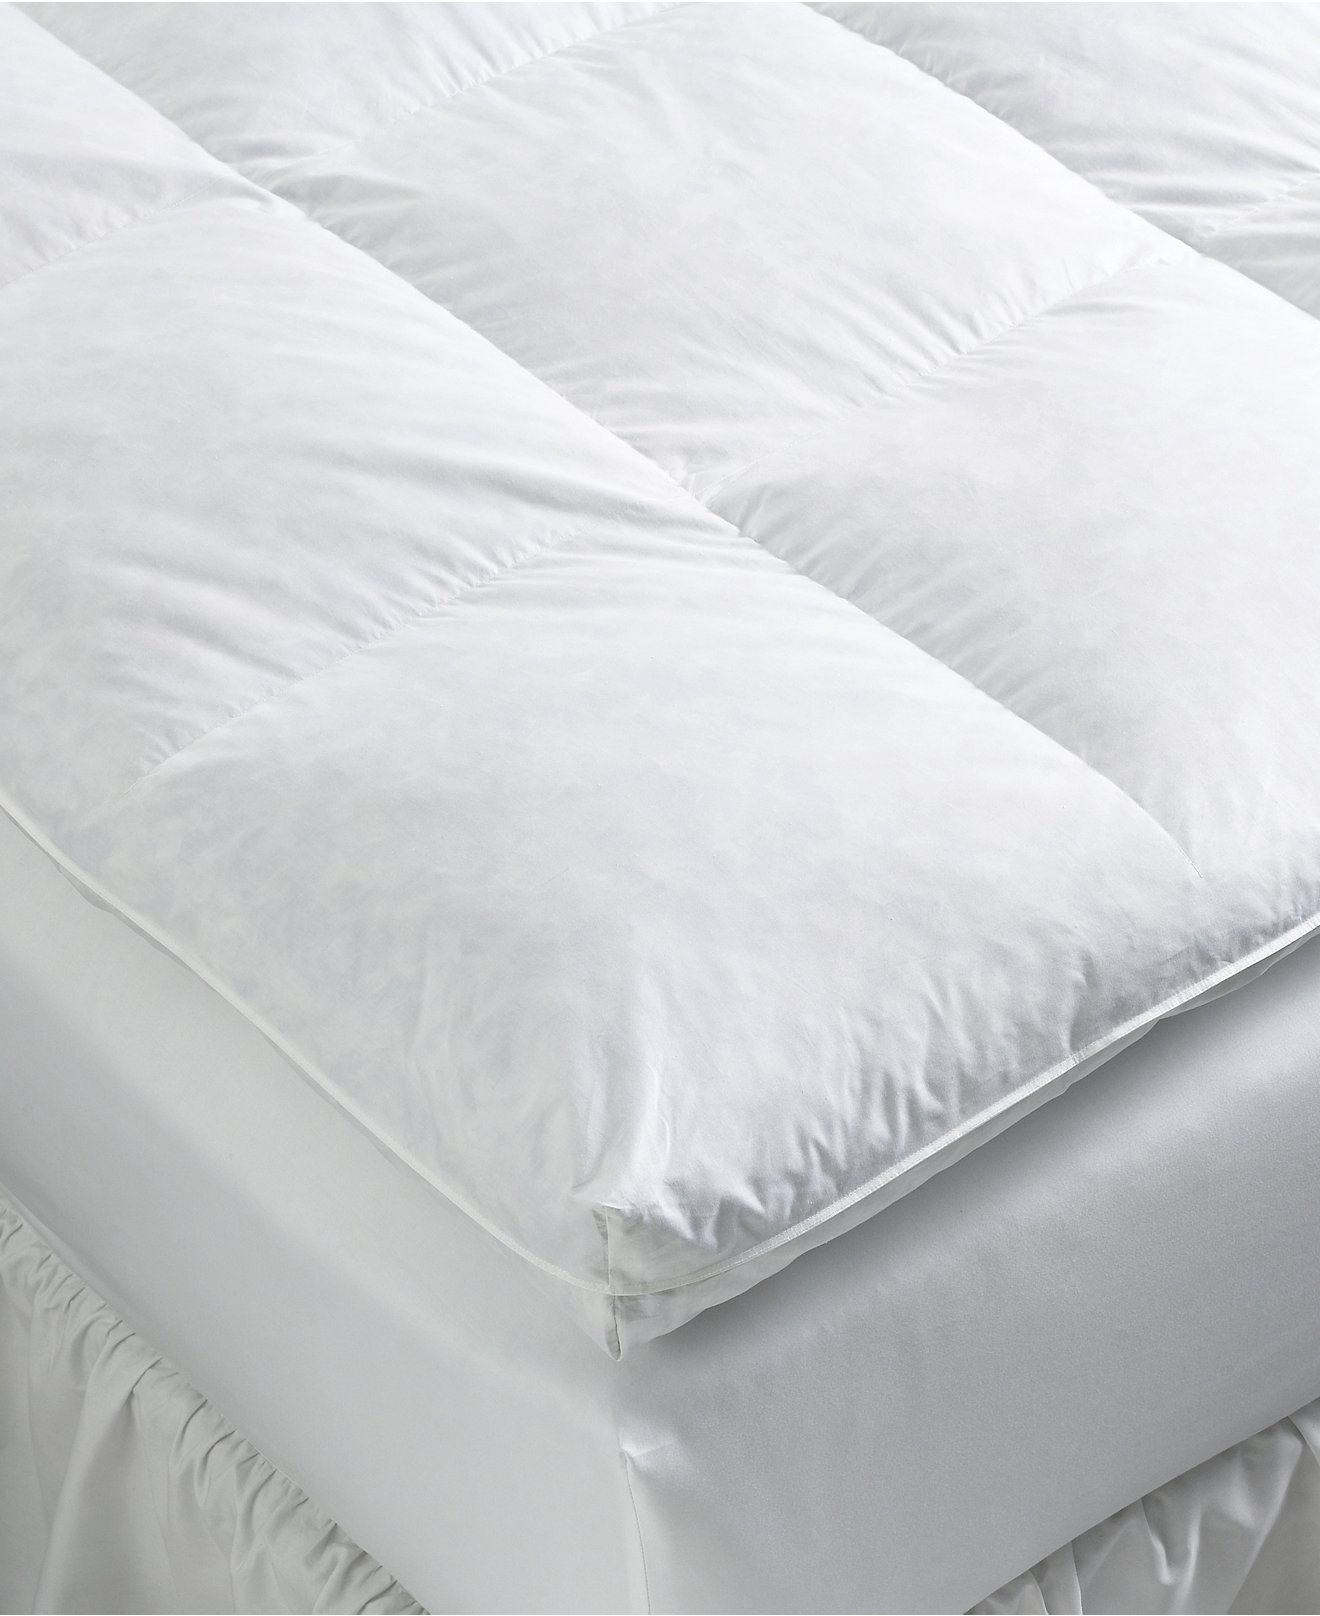 Feather bed mattress - Pacific Coast True Baffle Box Featherbeds Mattress Pads Toppers Bed Bath Macy S